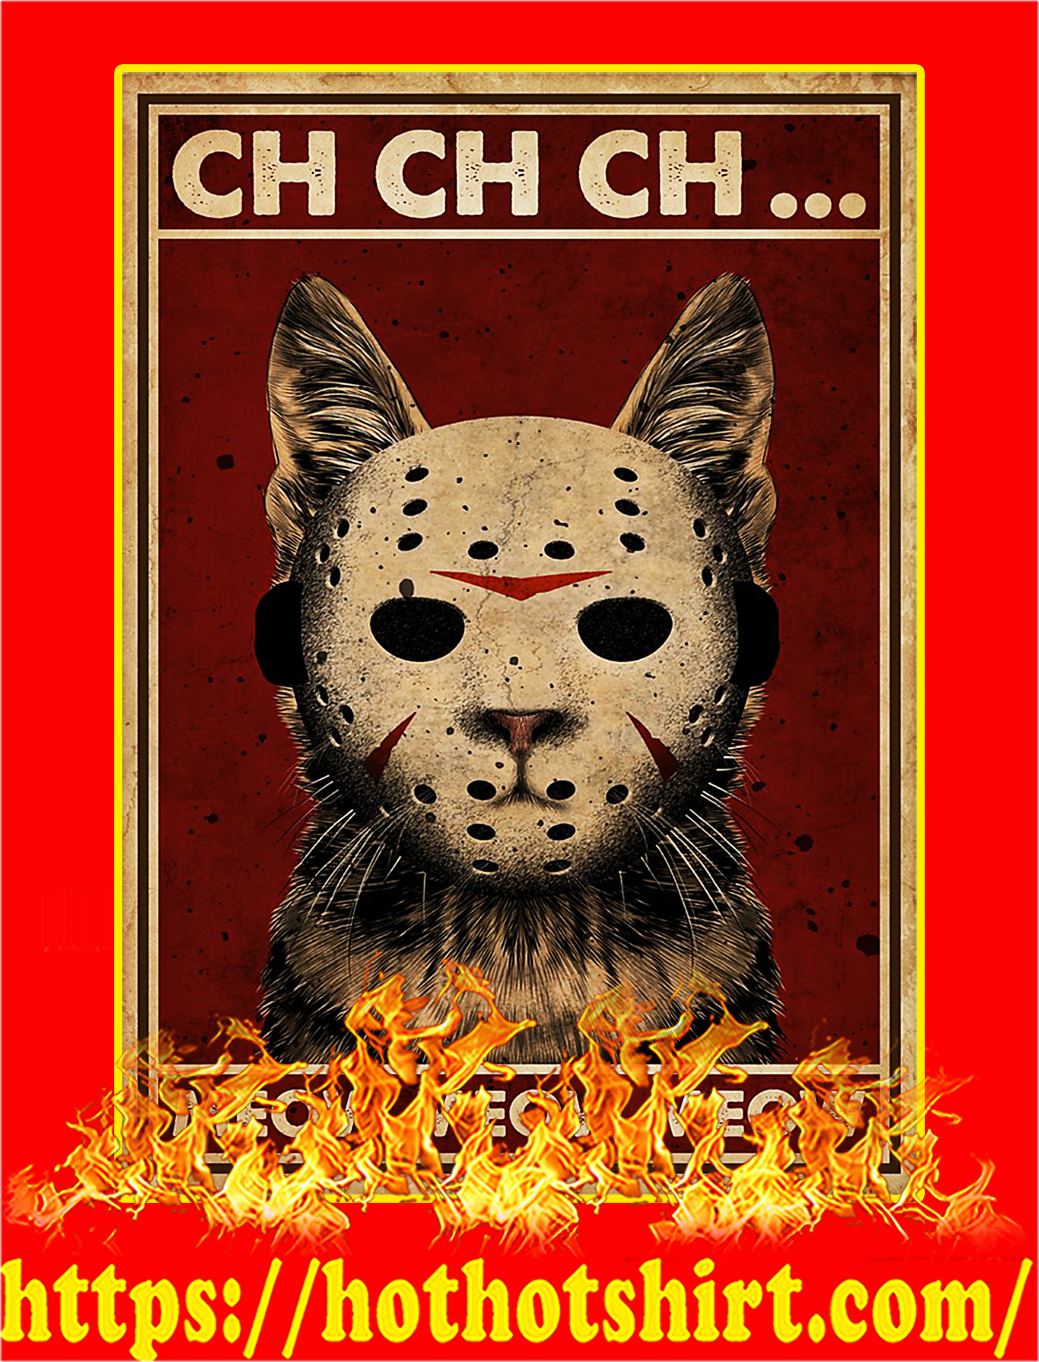 Cat Jason ch ch ch meow meow meow poster - A4